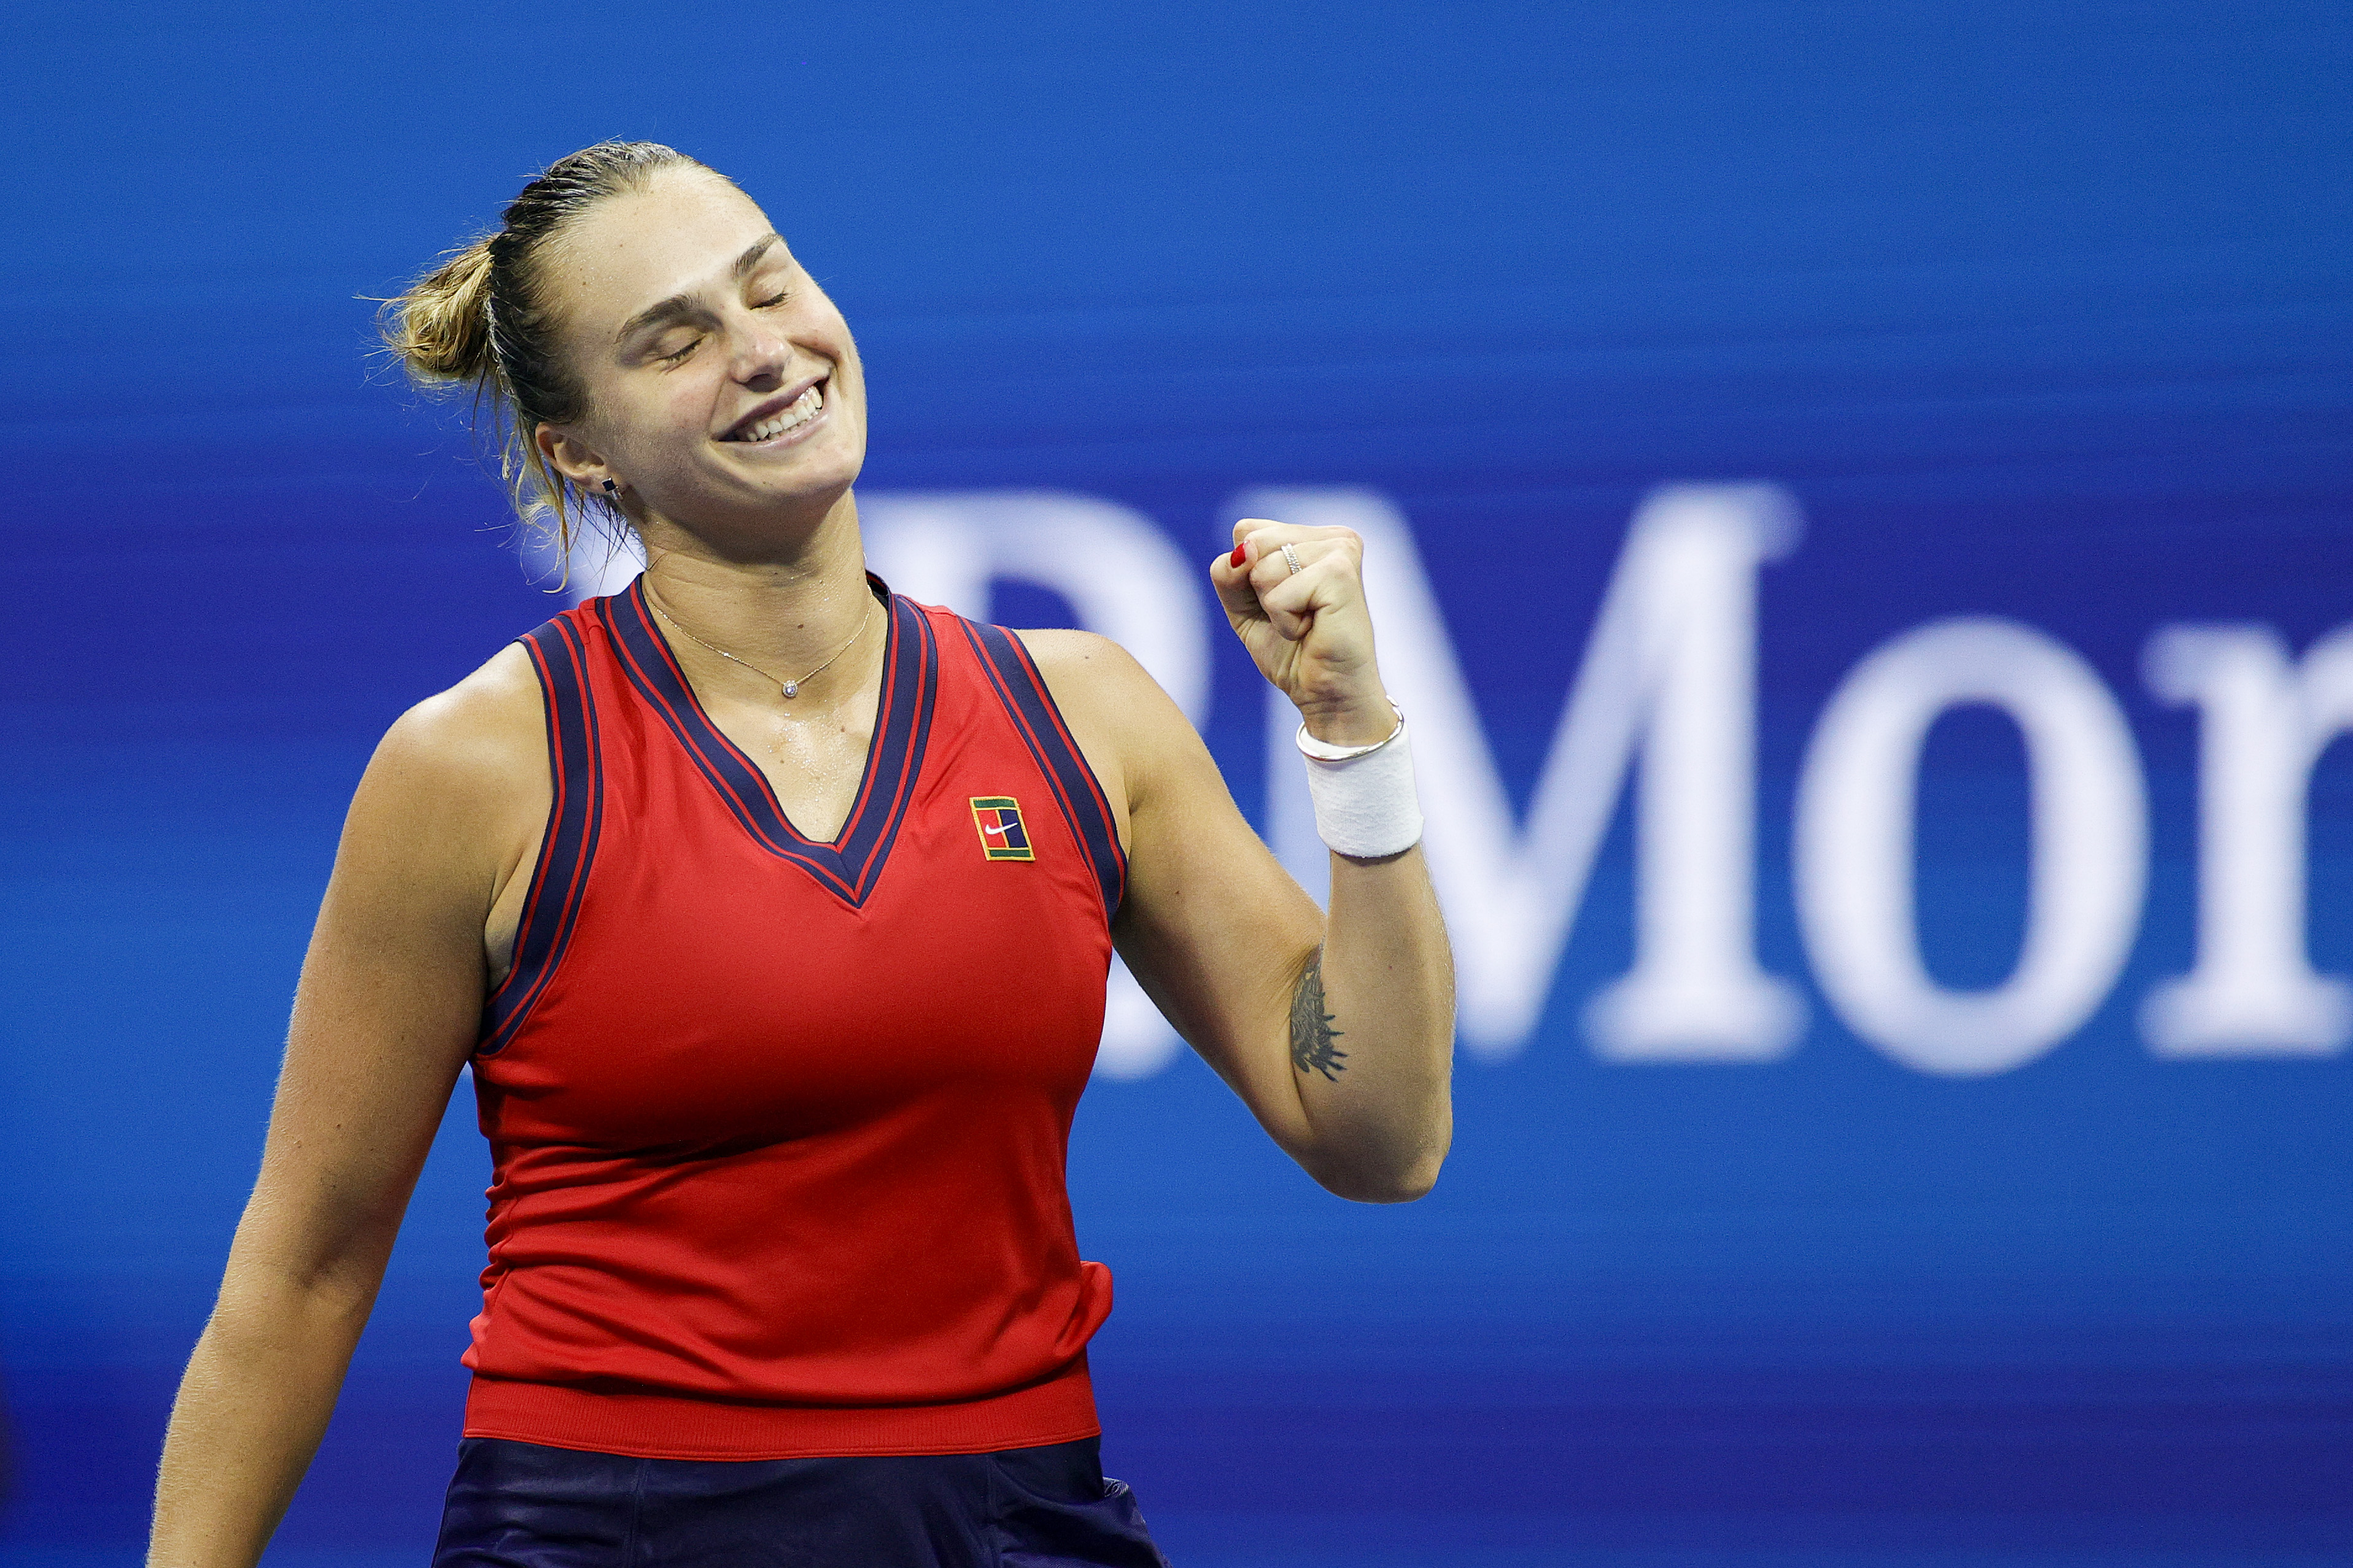 Aryna Sabalenka of Belarus celebrates match point against Barbora Krejcikova of Czech Republic during her Women's Singles quarterfinals match on Day Nine of the 2021 US Open at the USTA Billie Jean King National Tennis Center on September 07, 2021 in the Flushing neighborhood of the Queens borough of New York City.